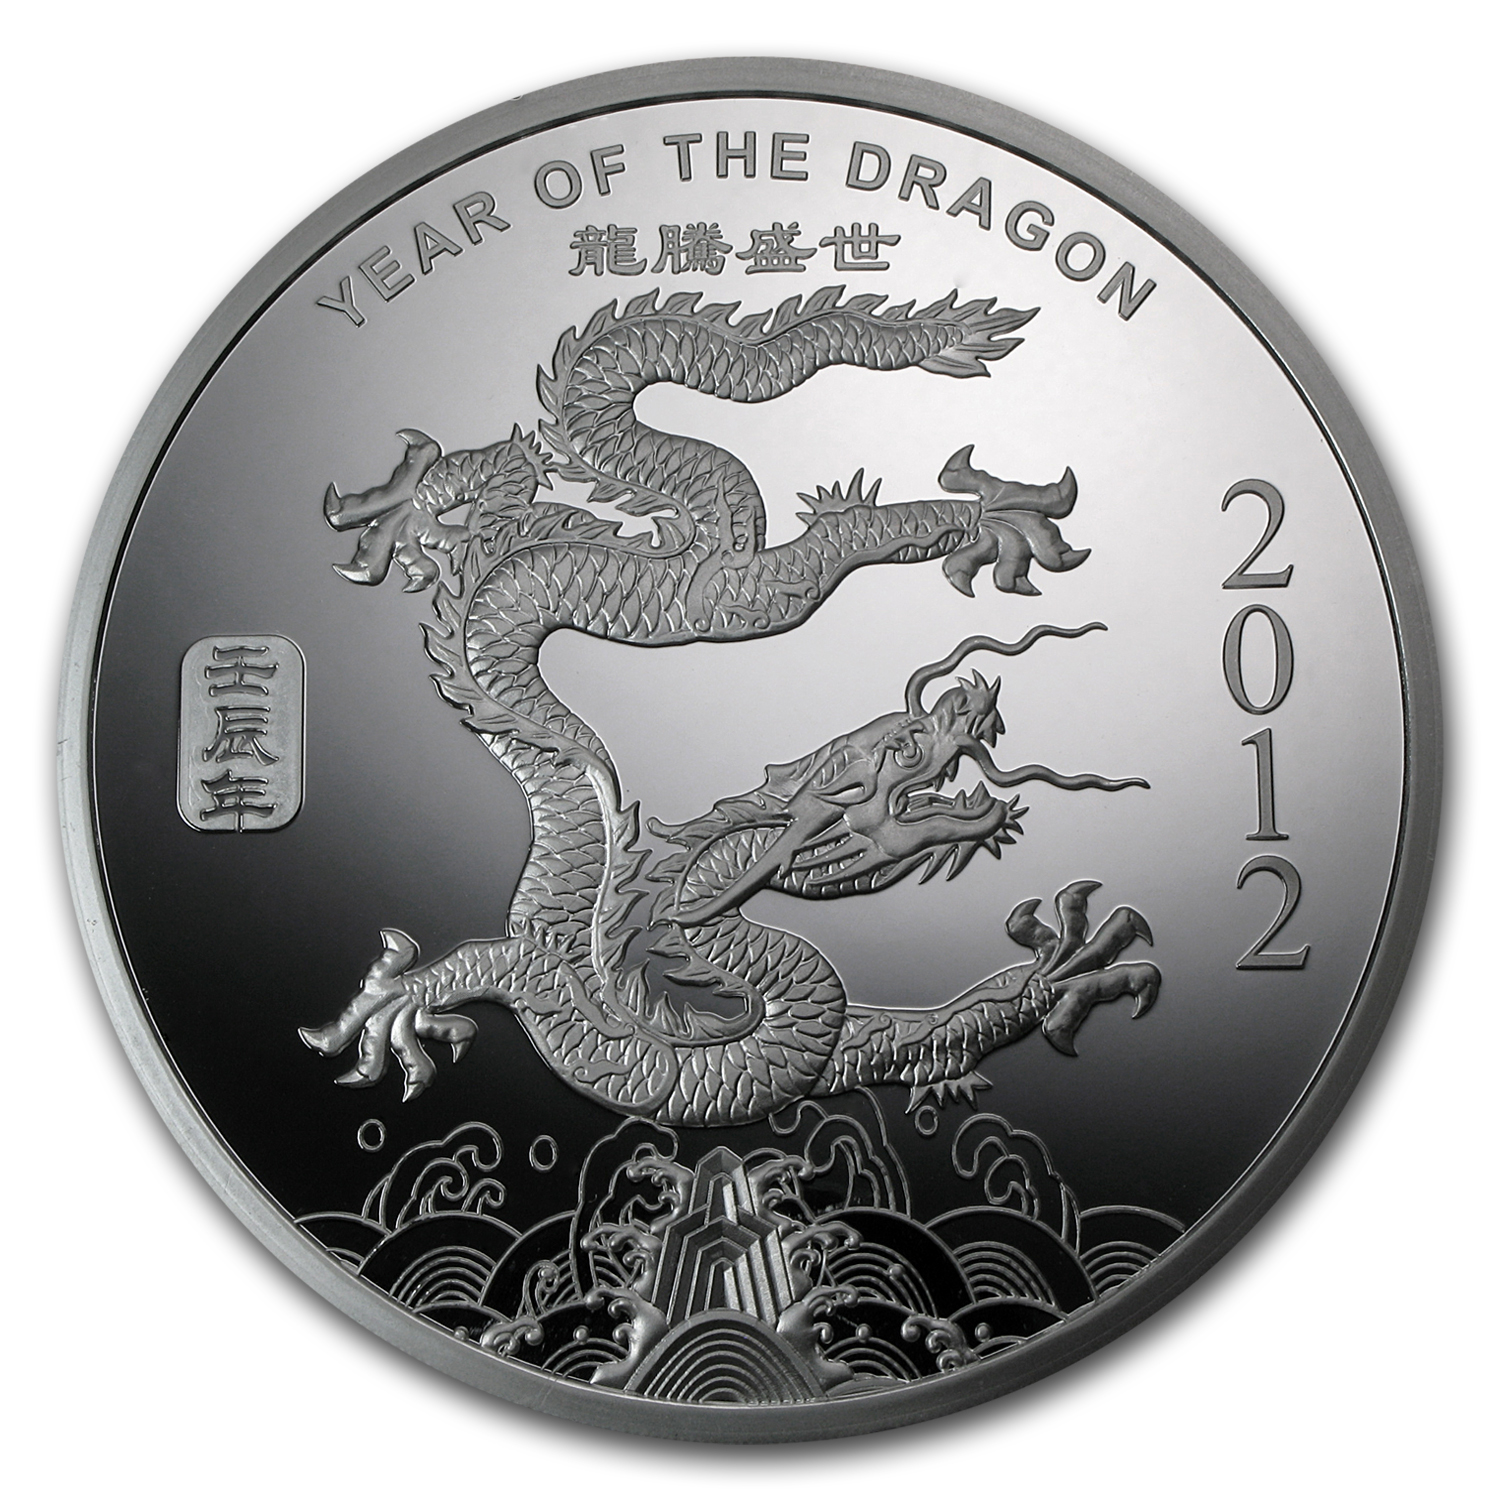 5 oz Silver Rounds - APMEX (2012 Year of the Dragon)